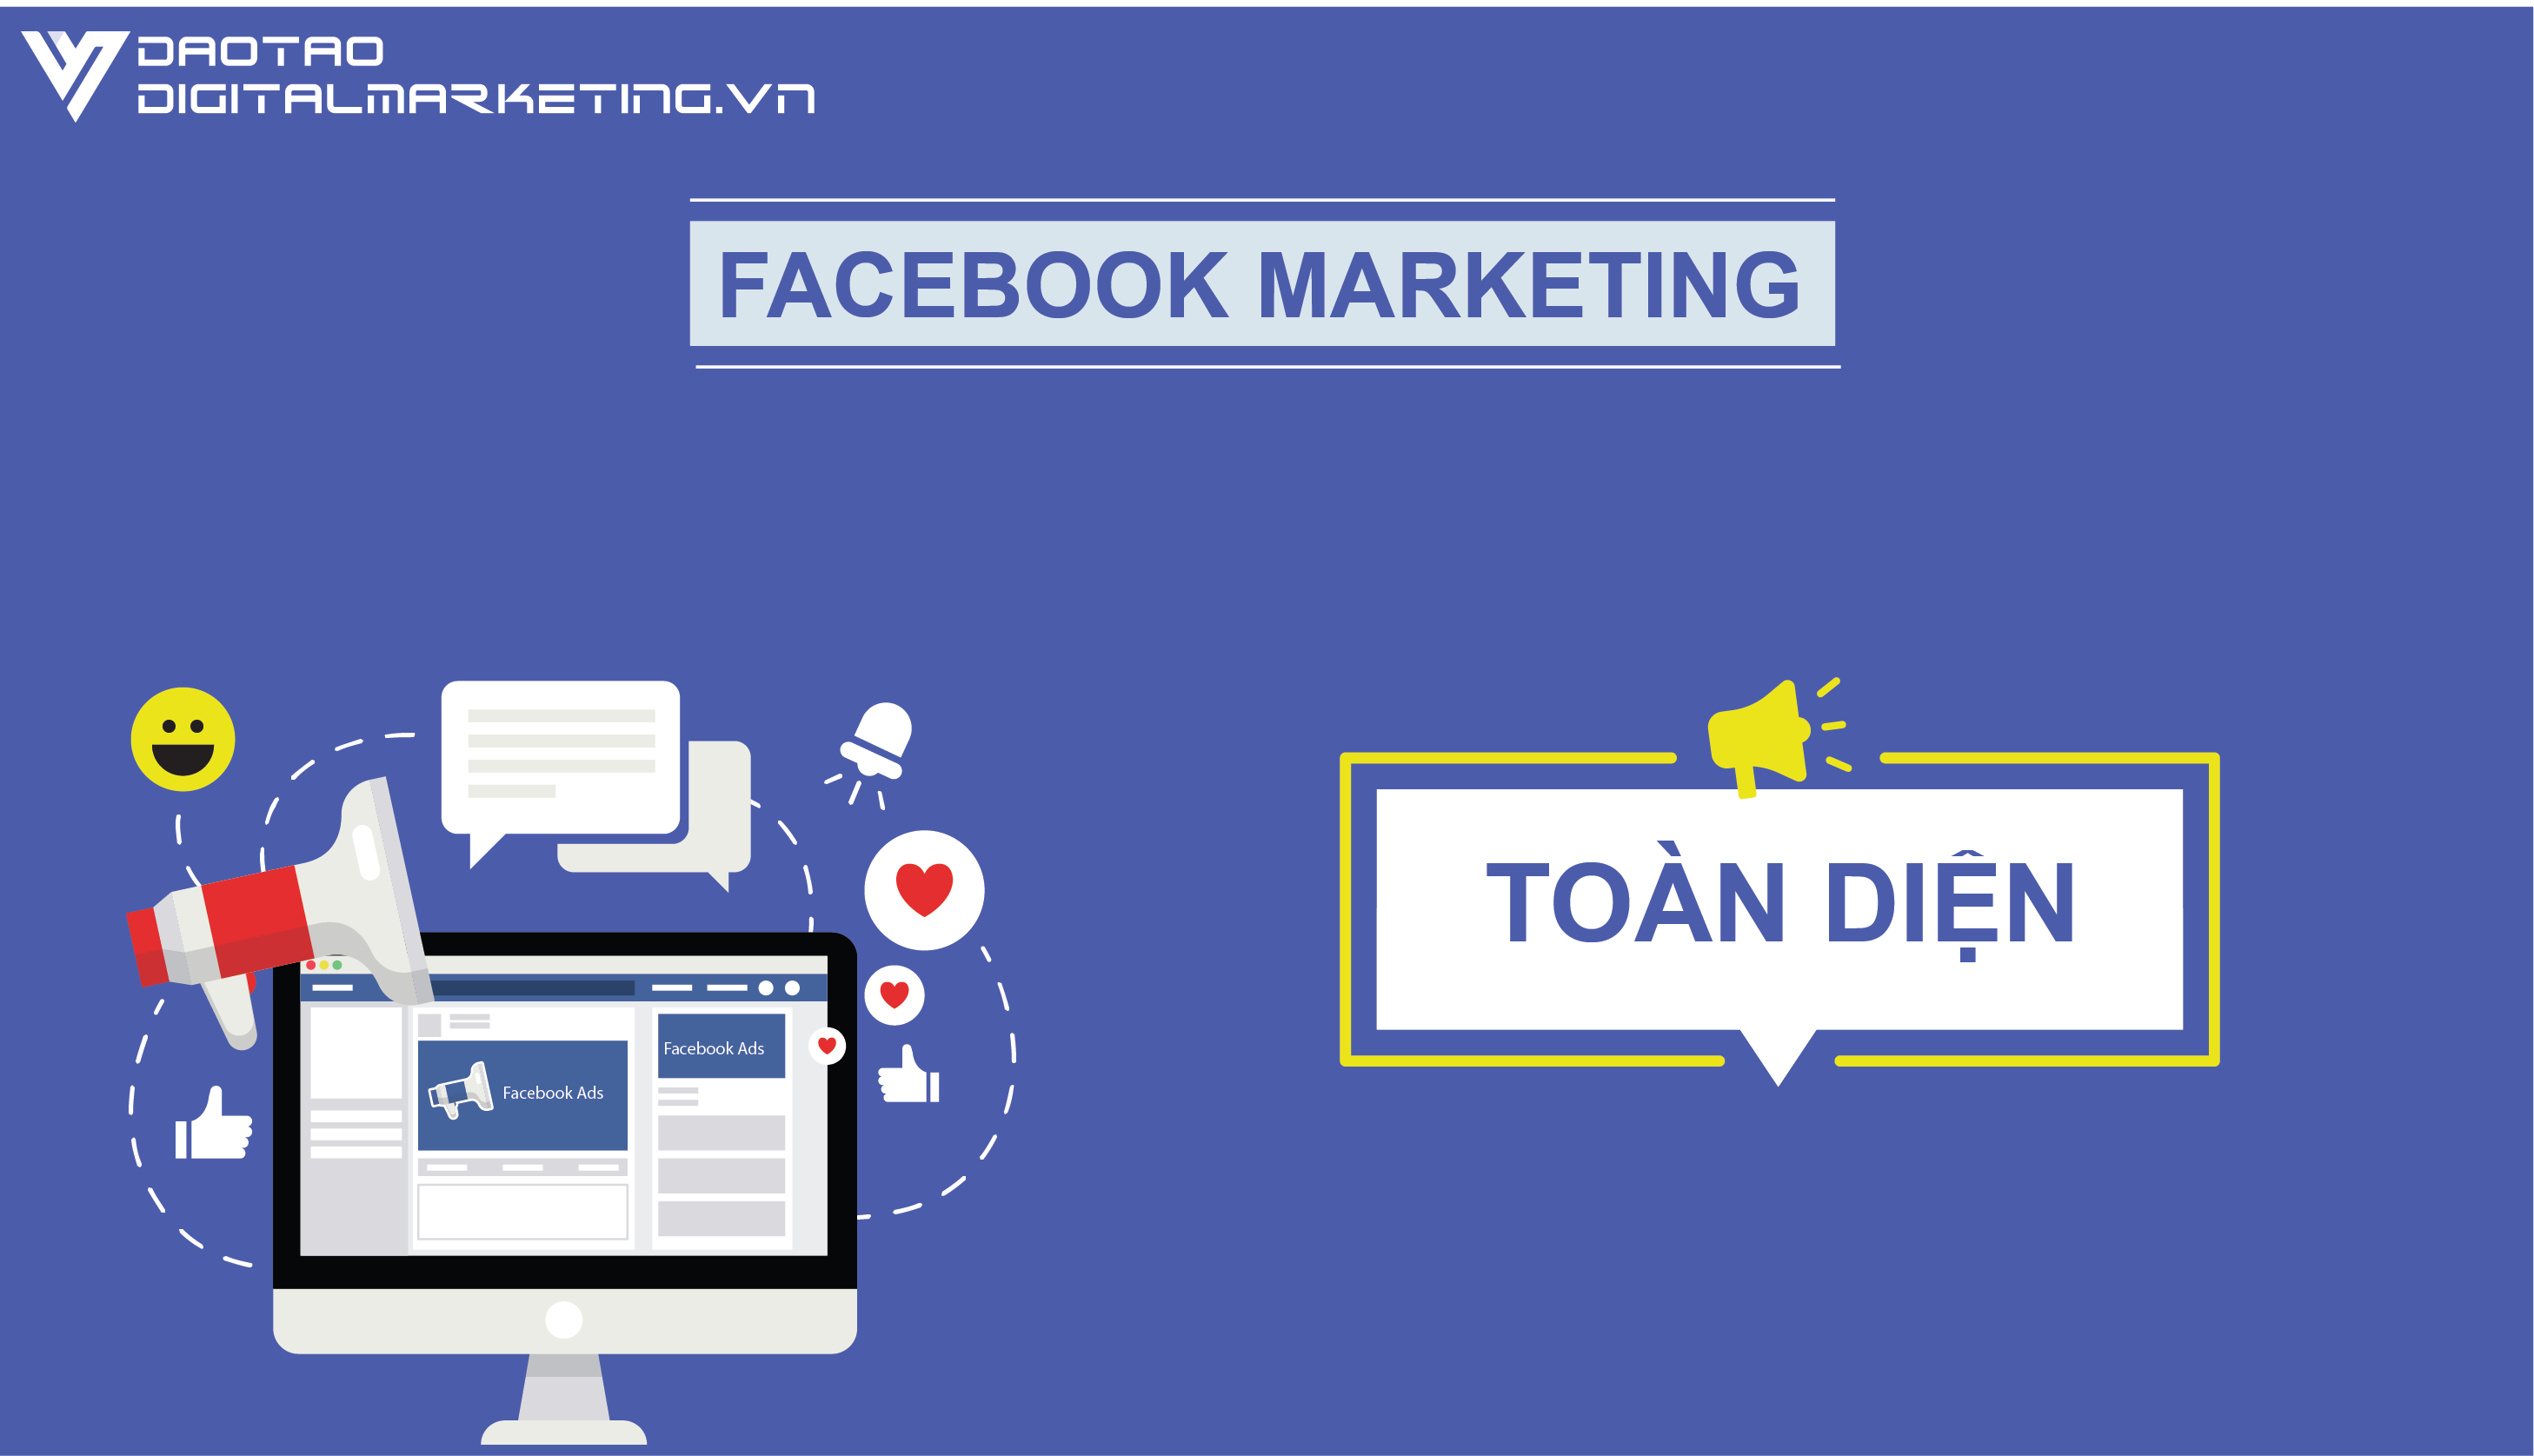 Facebook-marketing-dao-tao-digital-marketing